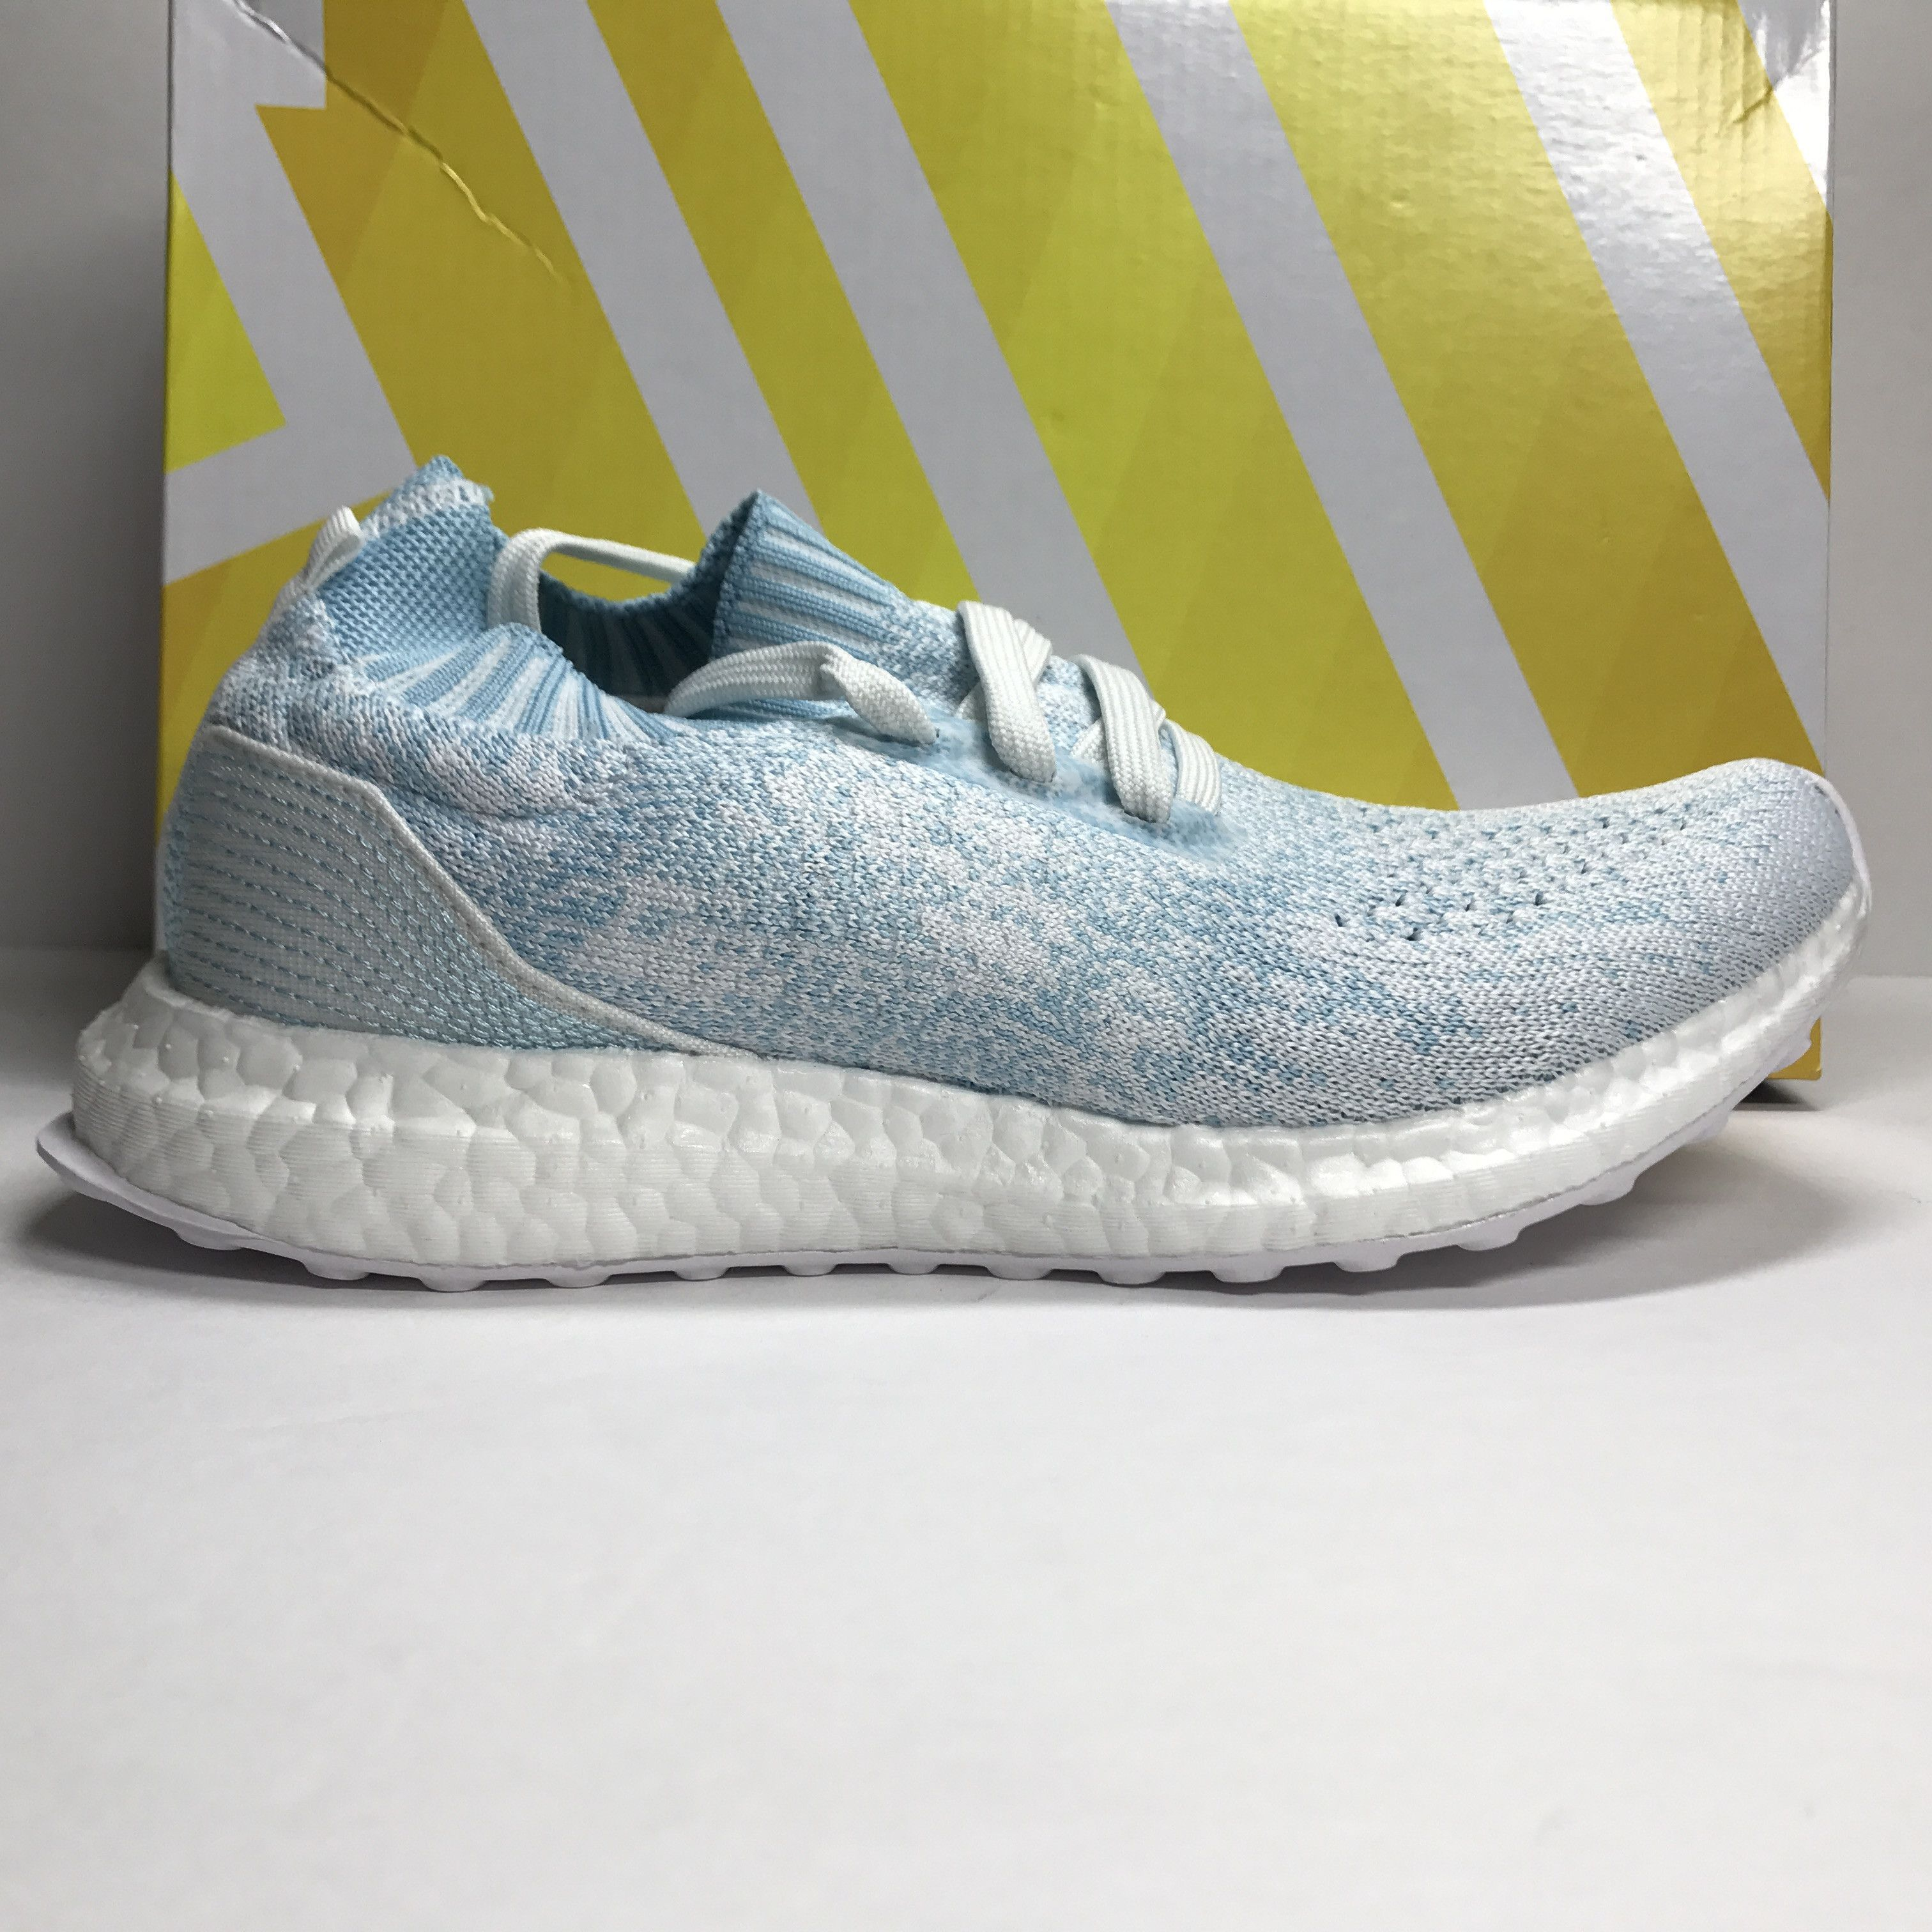 cc77e38af9f77 ... clearance ds adidas ultra boost uncaged parley ice blue size 5 size 6  6044f 059bf